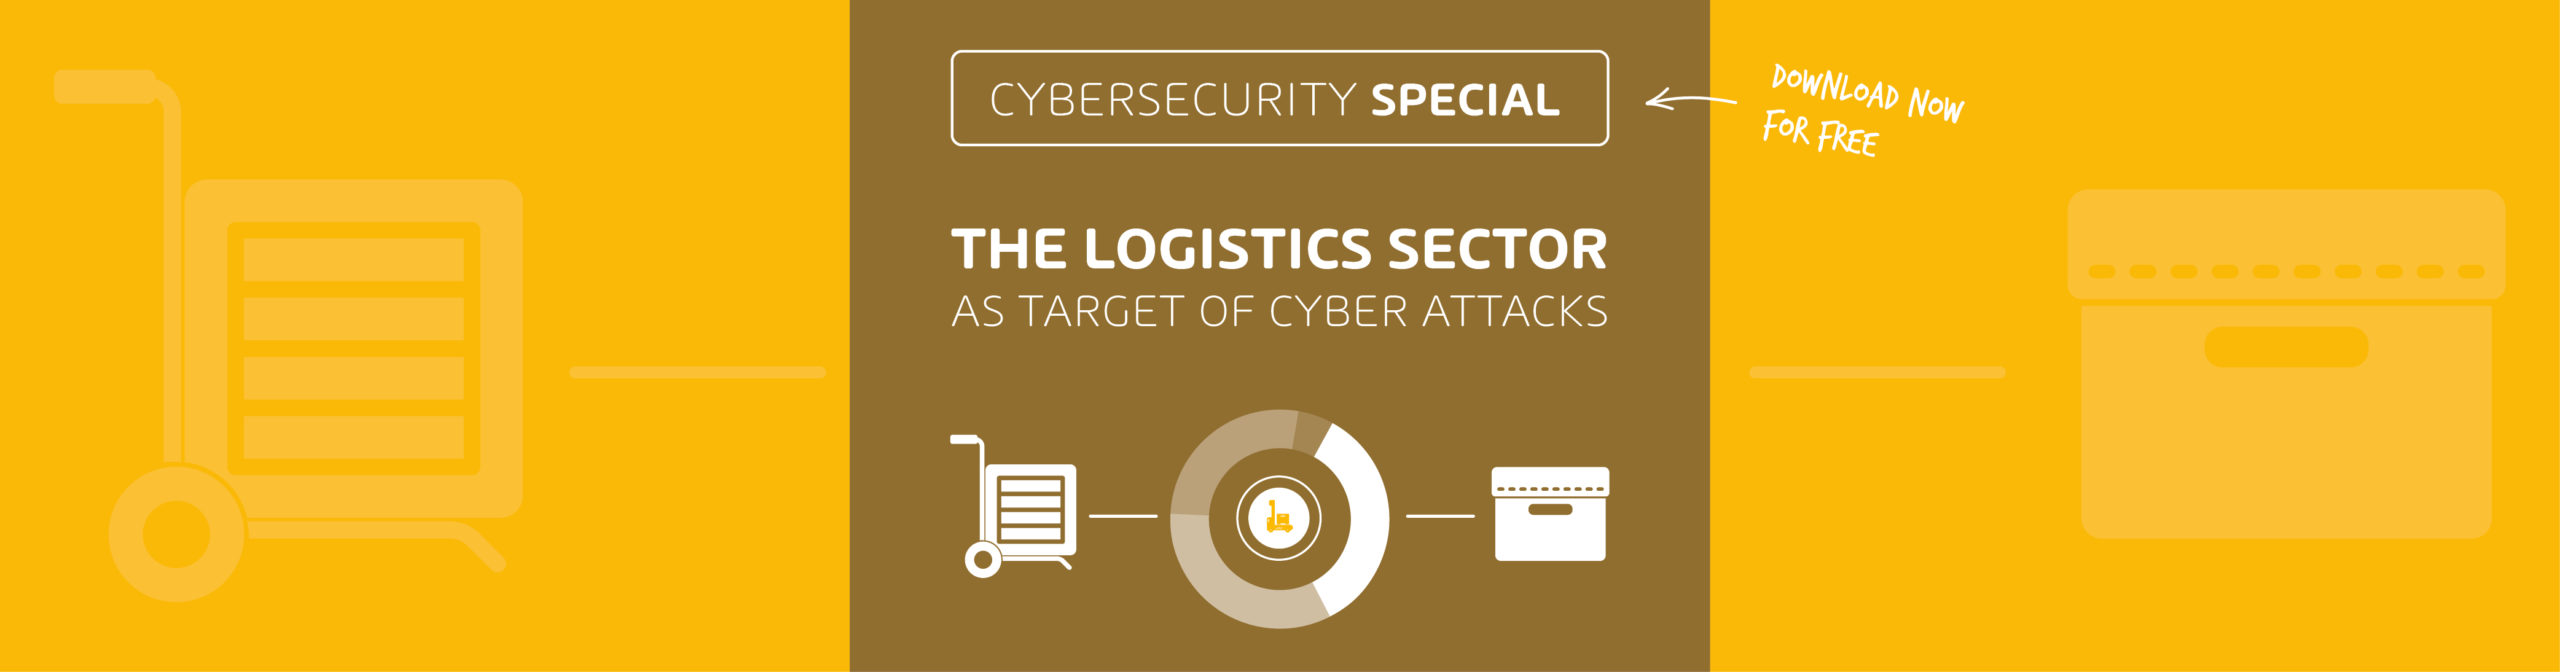 Cybersecurity Special logistics as target of cyberattacks